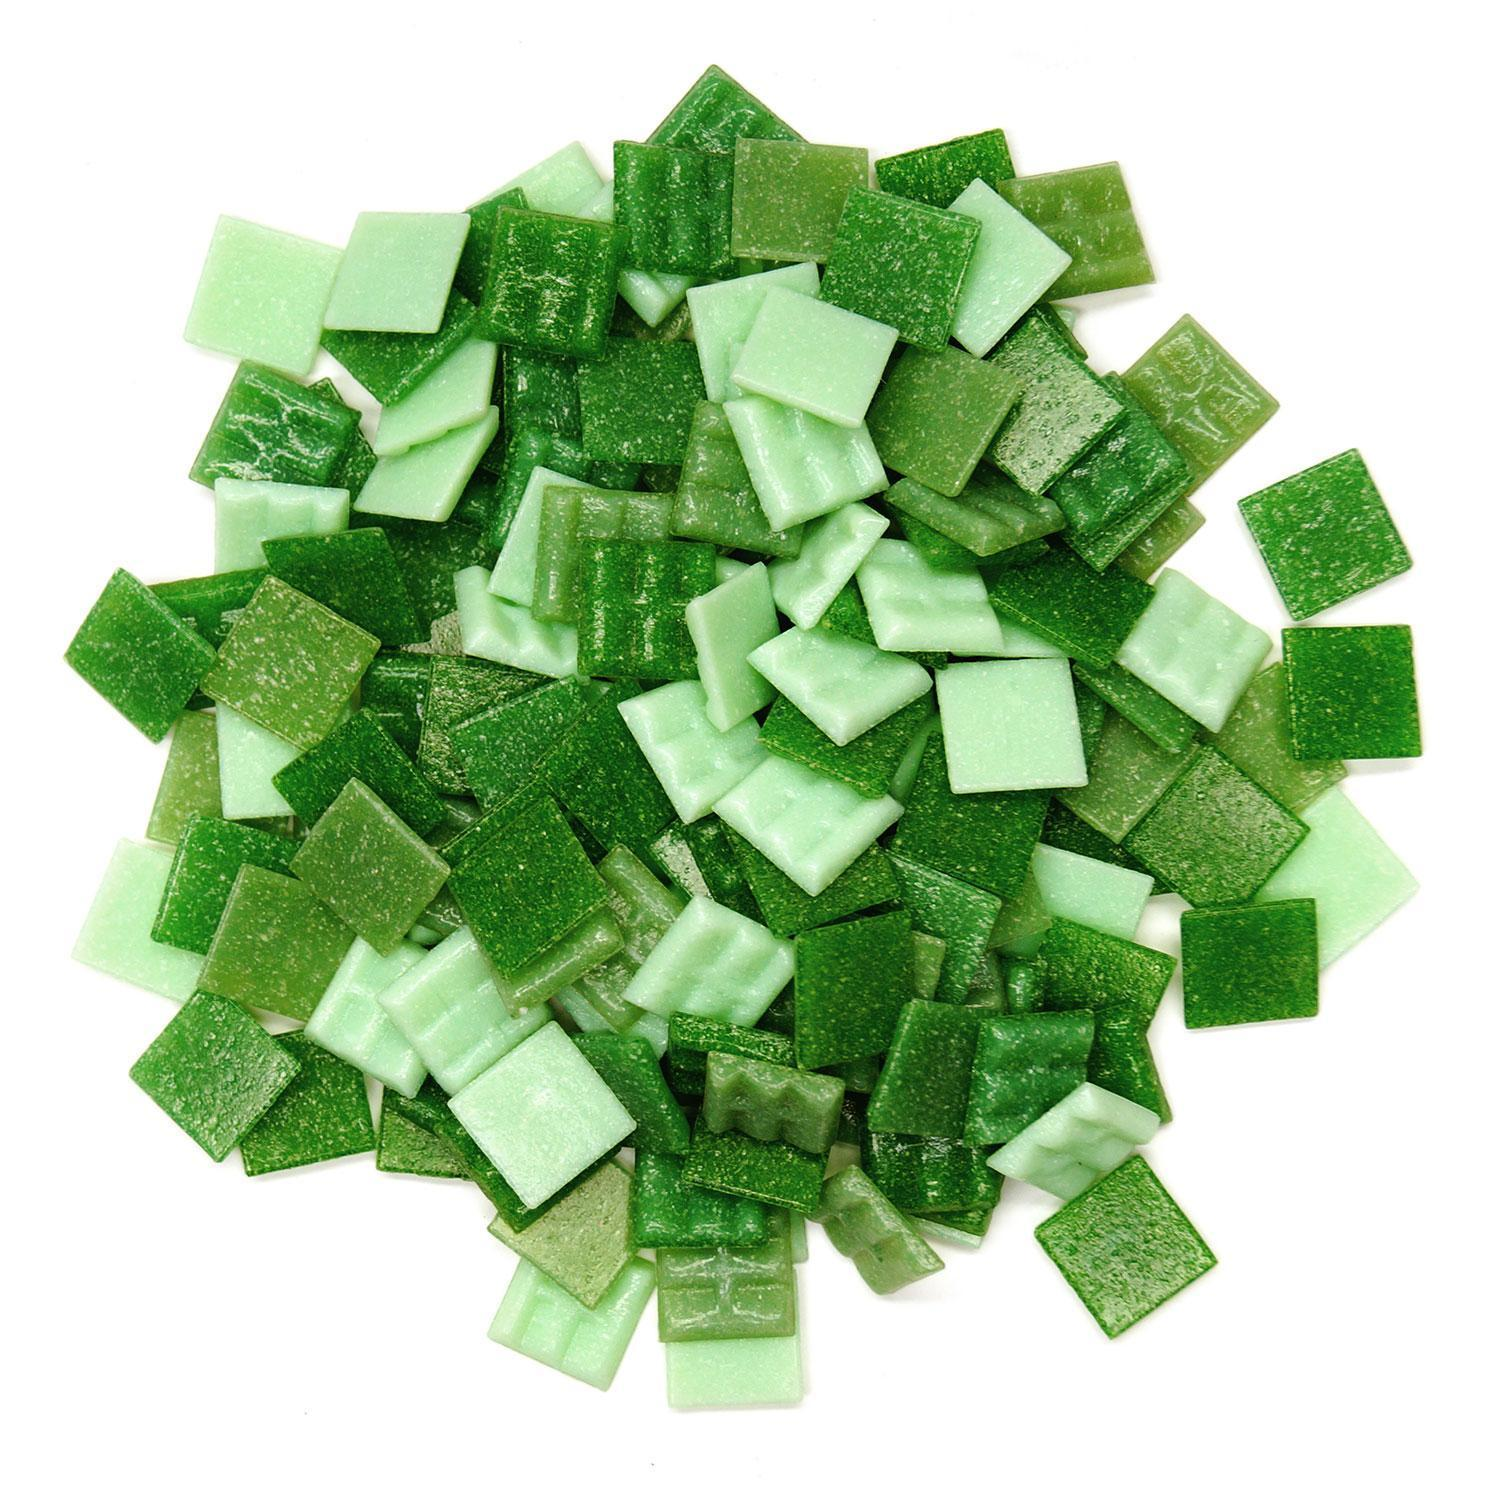 3/4 Grassy Greens Venetian Tile Mix 1 Lb